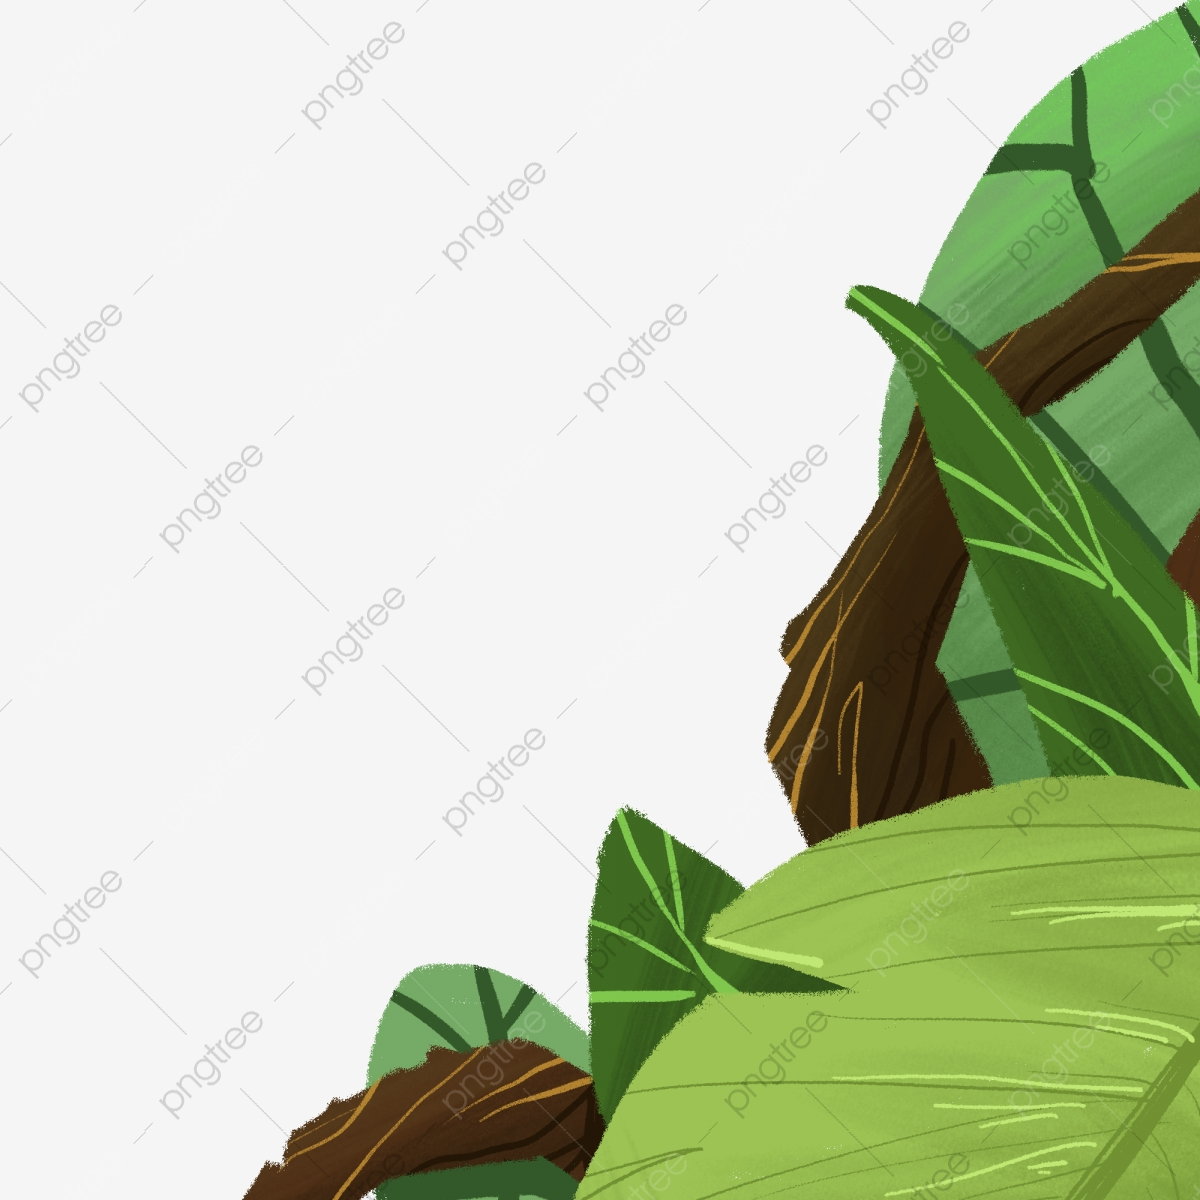 Set of cartoon forest animals and plants, clipart commercial use, clipart animal, doodle svg, image svg, forest clipart, plants clipart. Cartoon Big Forest Free Illustration Green Forest Plants Leaves Png Transparent Clipart Image And Psd File For Free Download